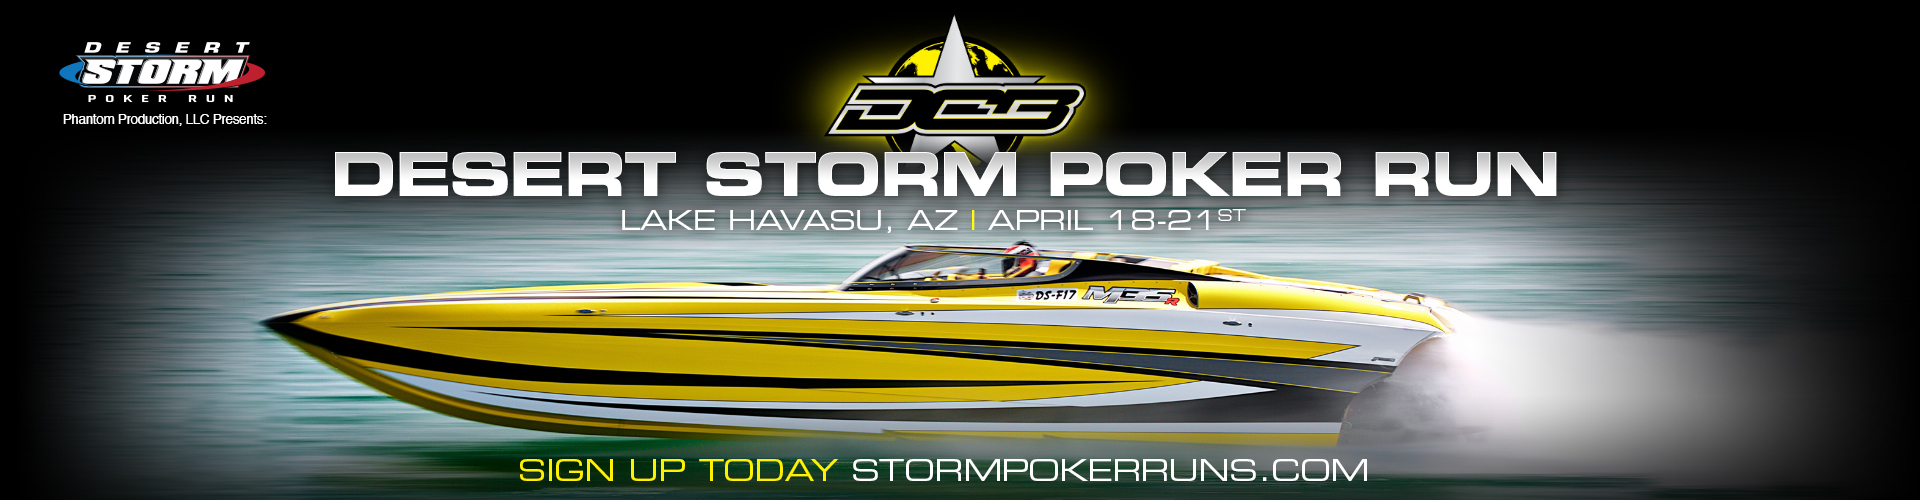 2018 Desert Storm Poker Run